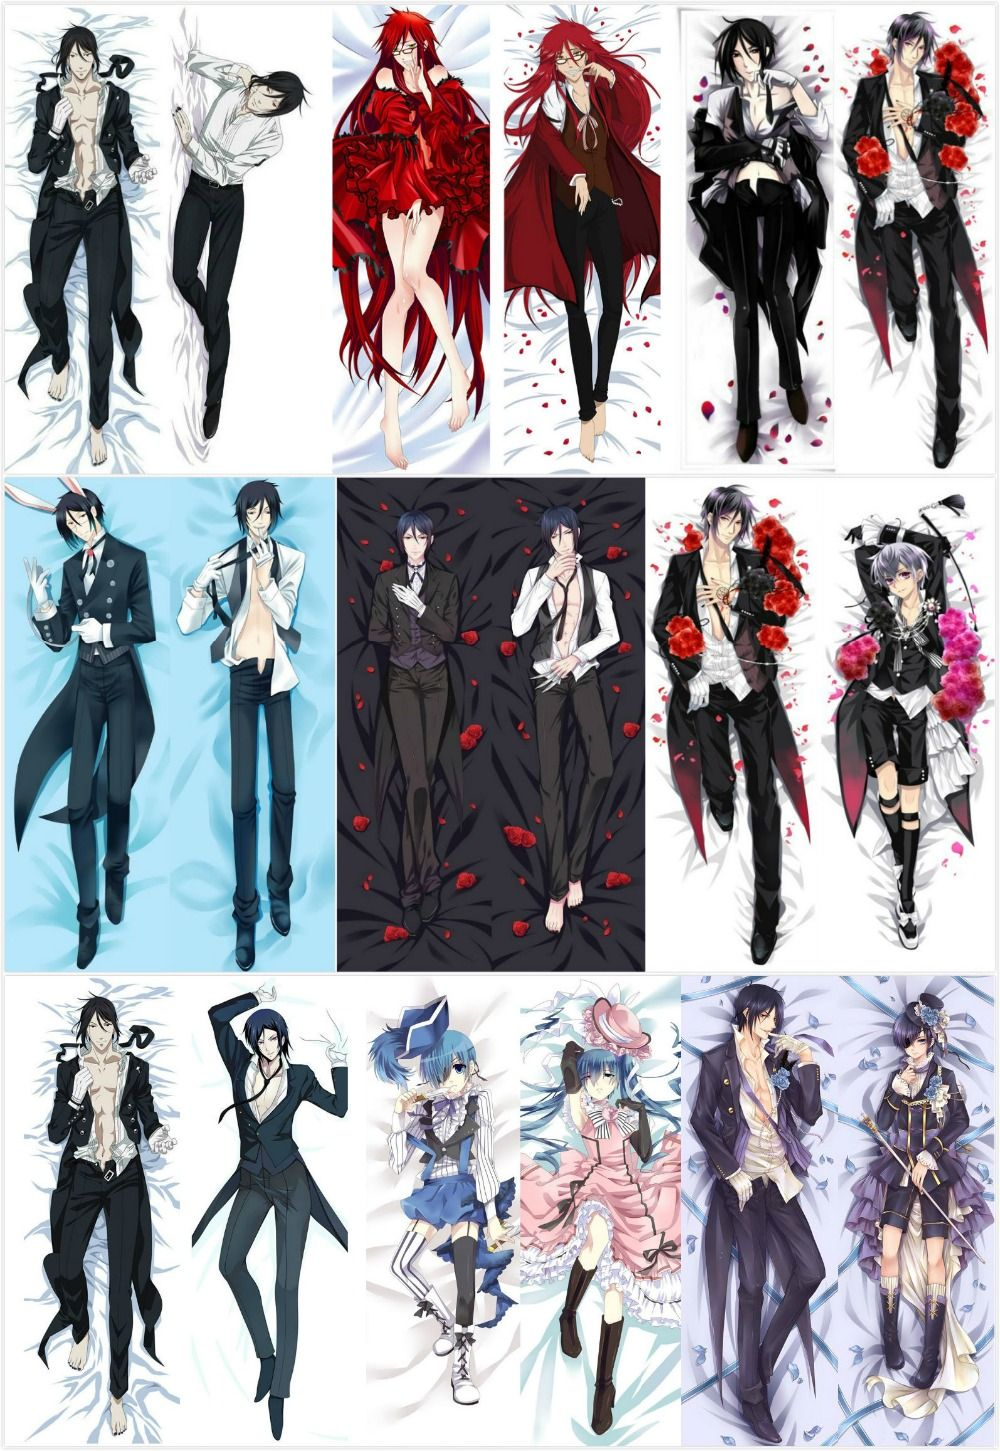 Dakimakura Black Butler Kuroshitsuji Sebastian Michaelis Hug Body Pillow Cases